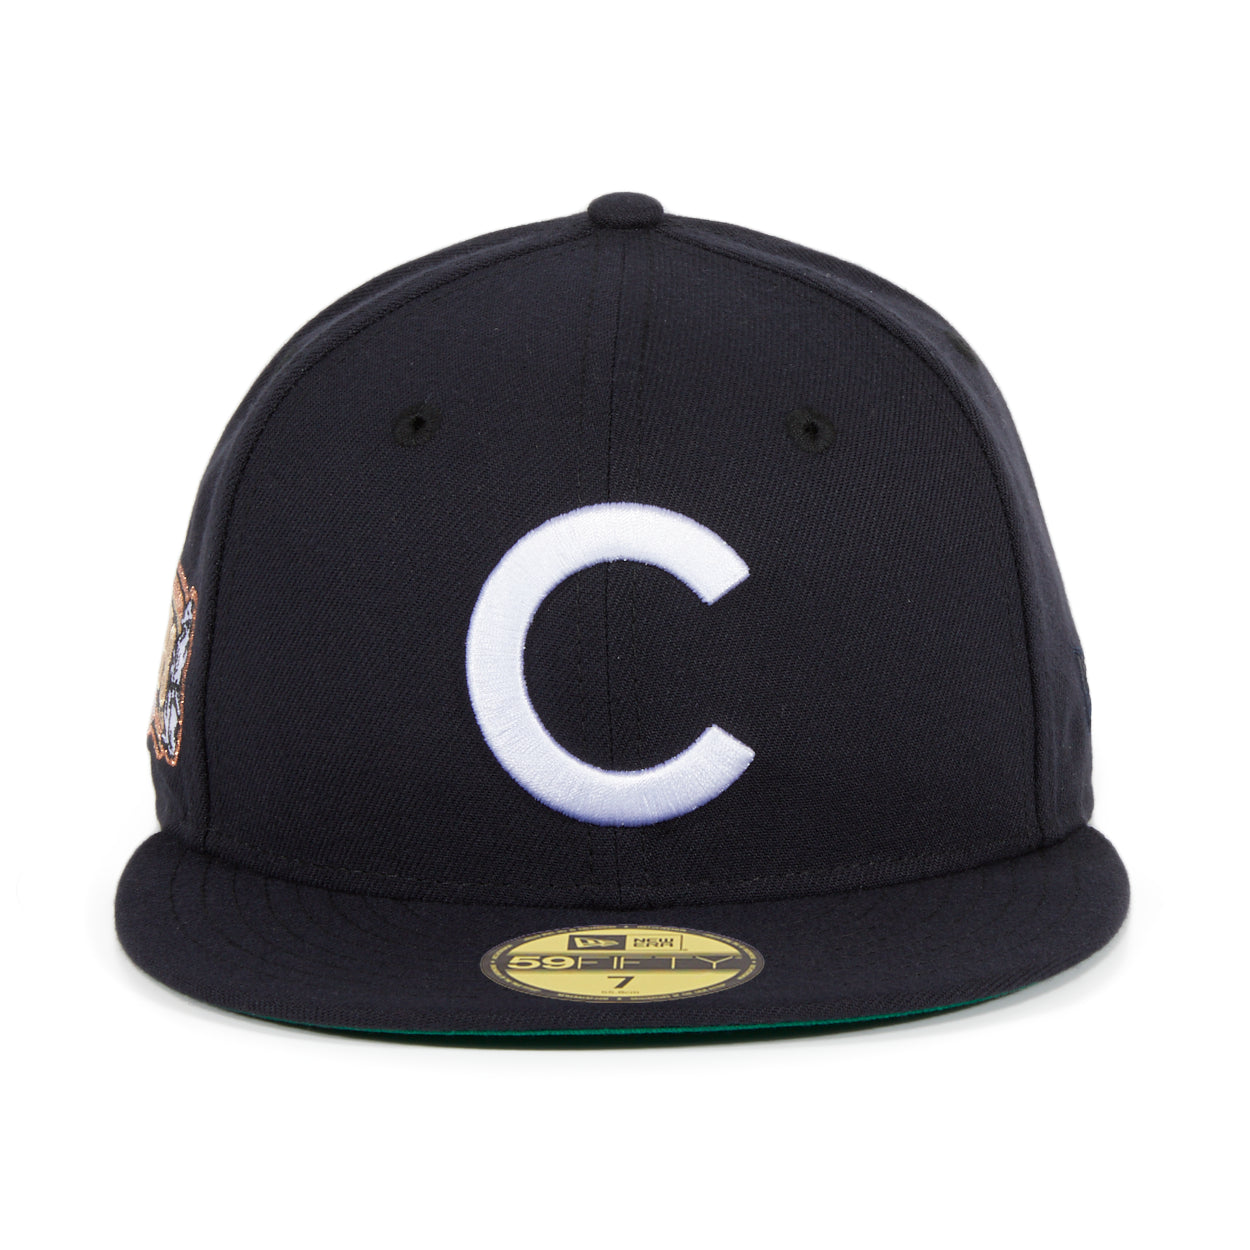 Exclusive New Era 59Fifty Chicago Cubs 1908 West Side Grounds Hat - Navy